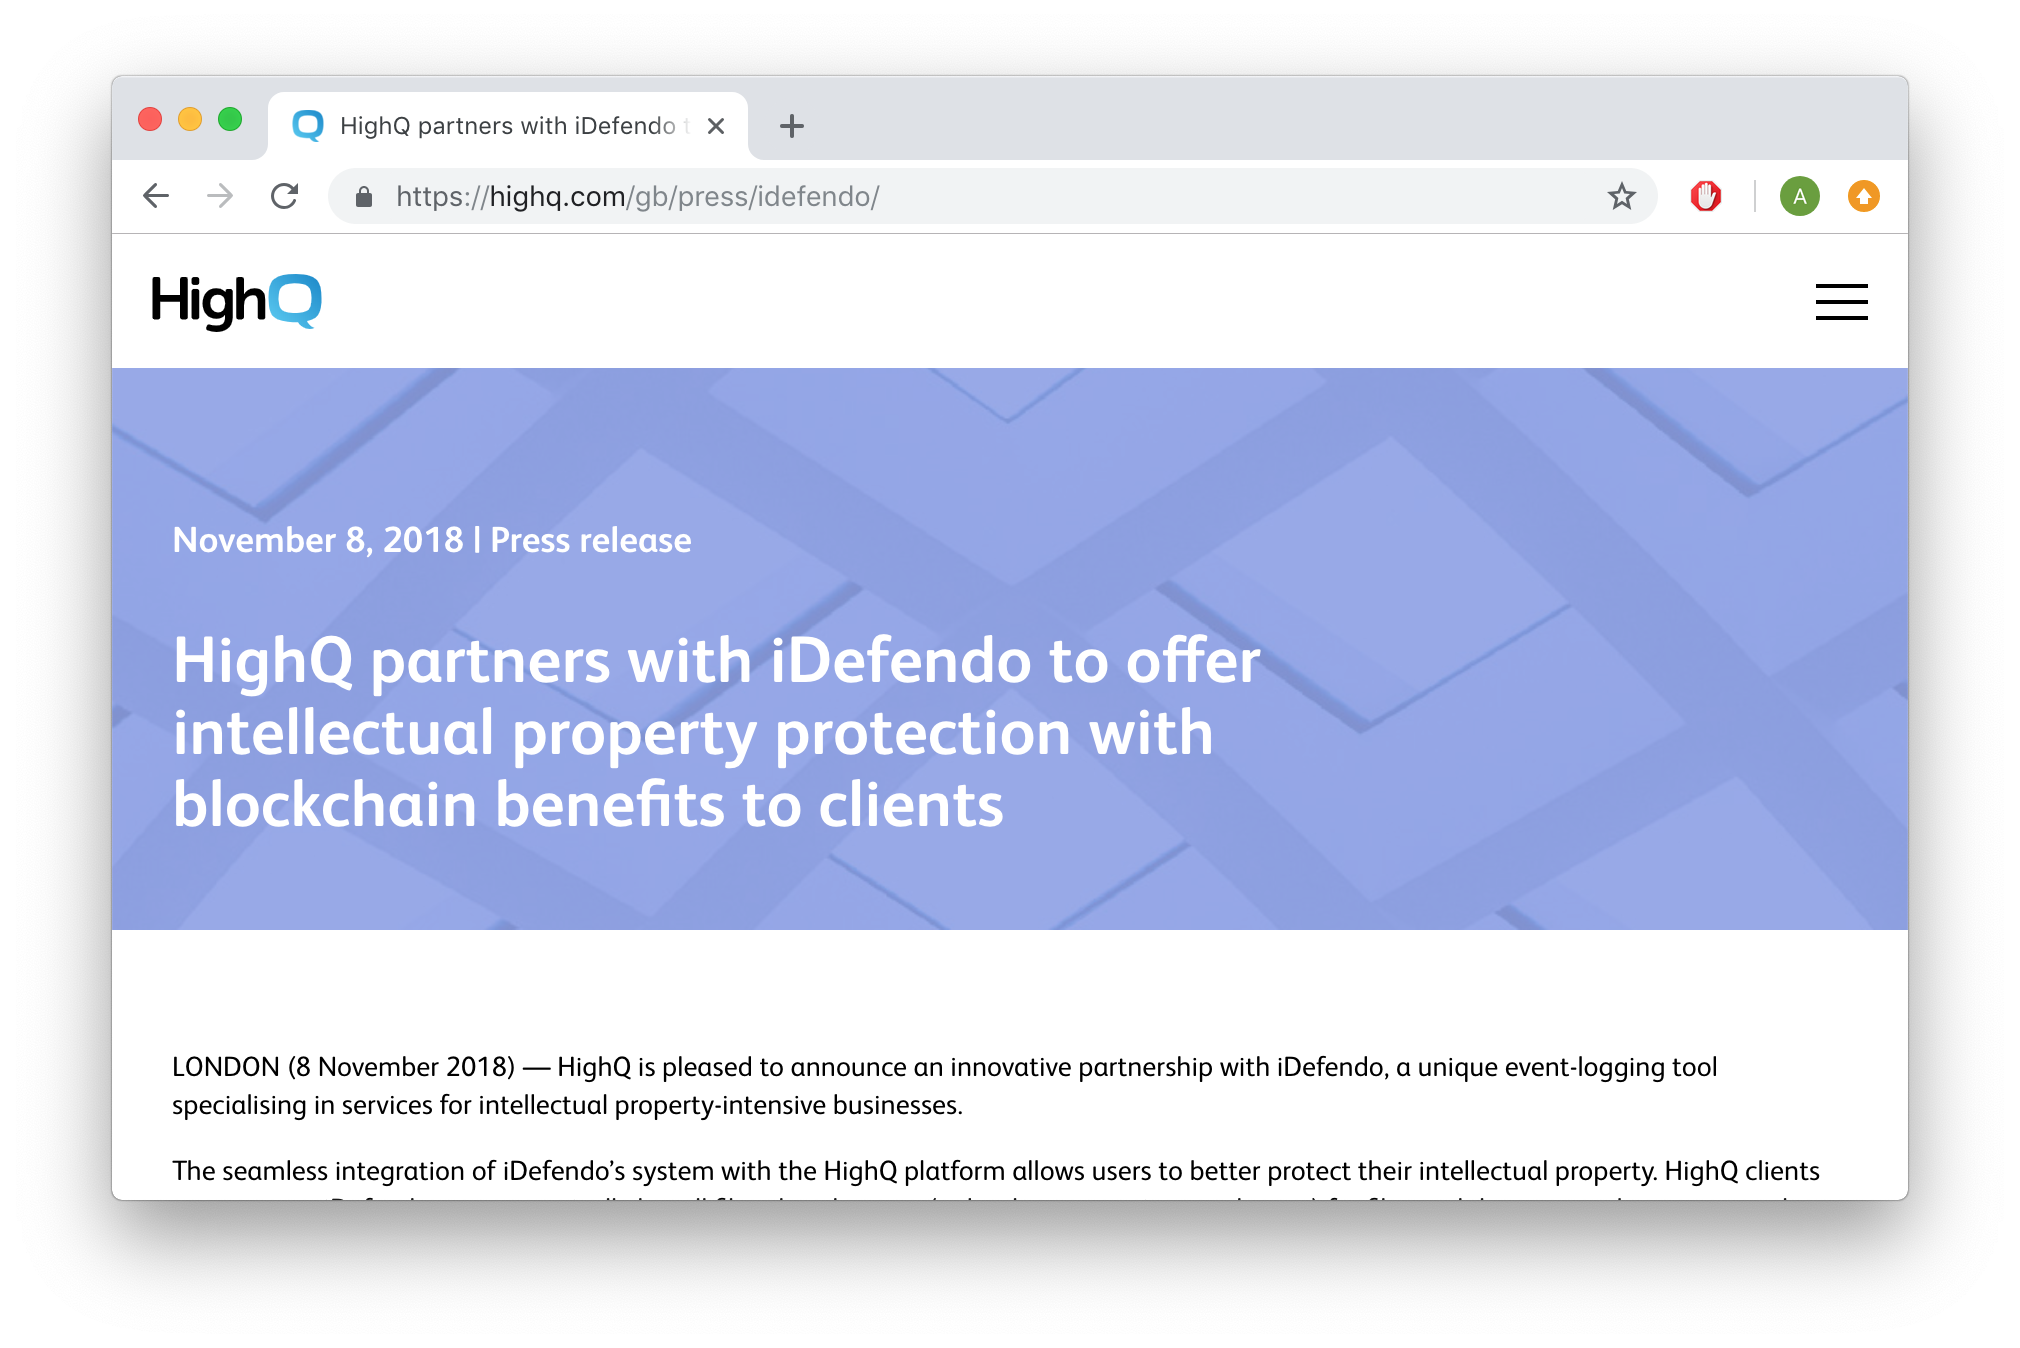 Press release from HighQ: HighQ partners with iDefendo to offer intellectual property protection with blockchain benefits to clients